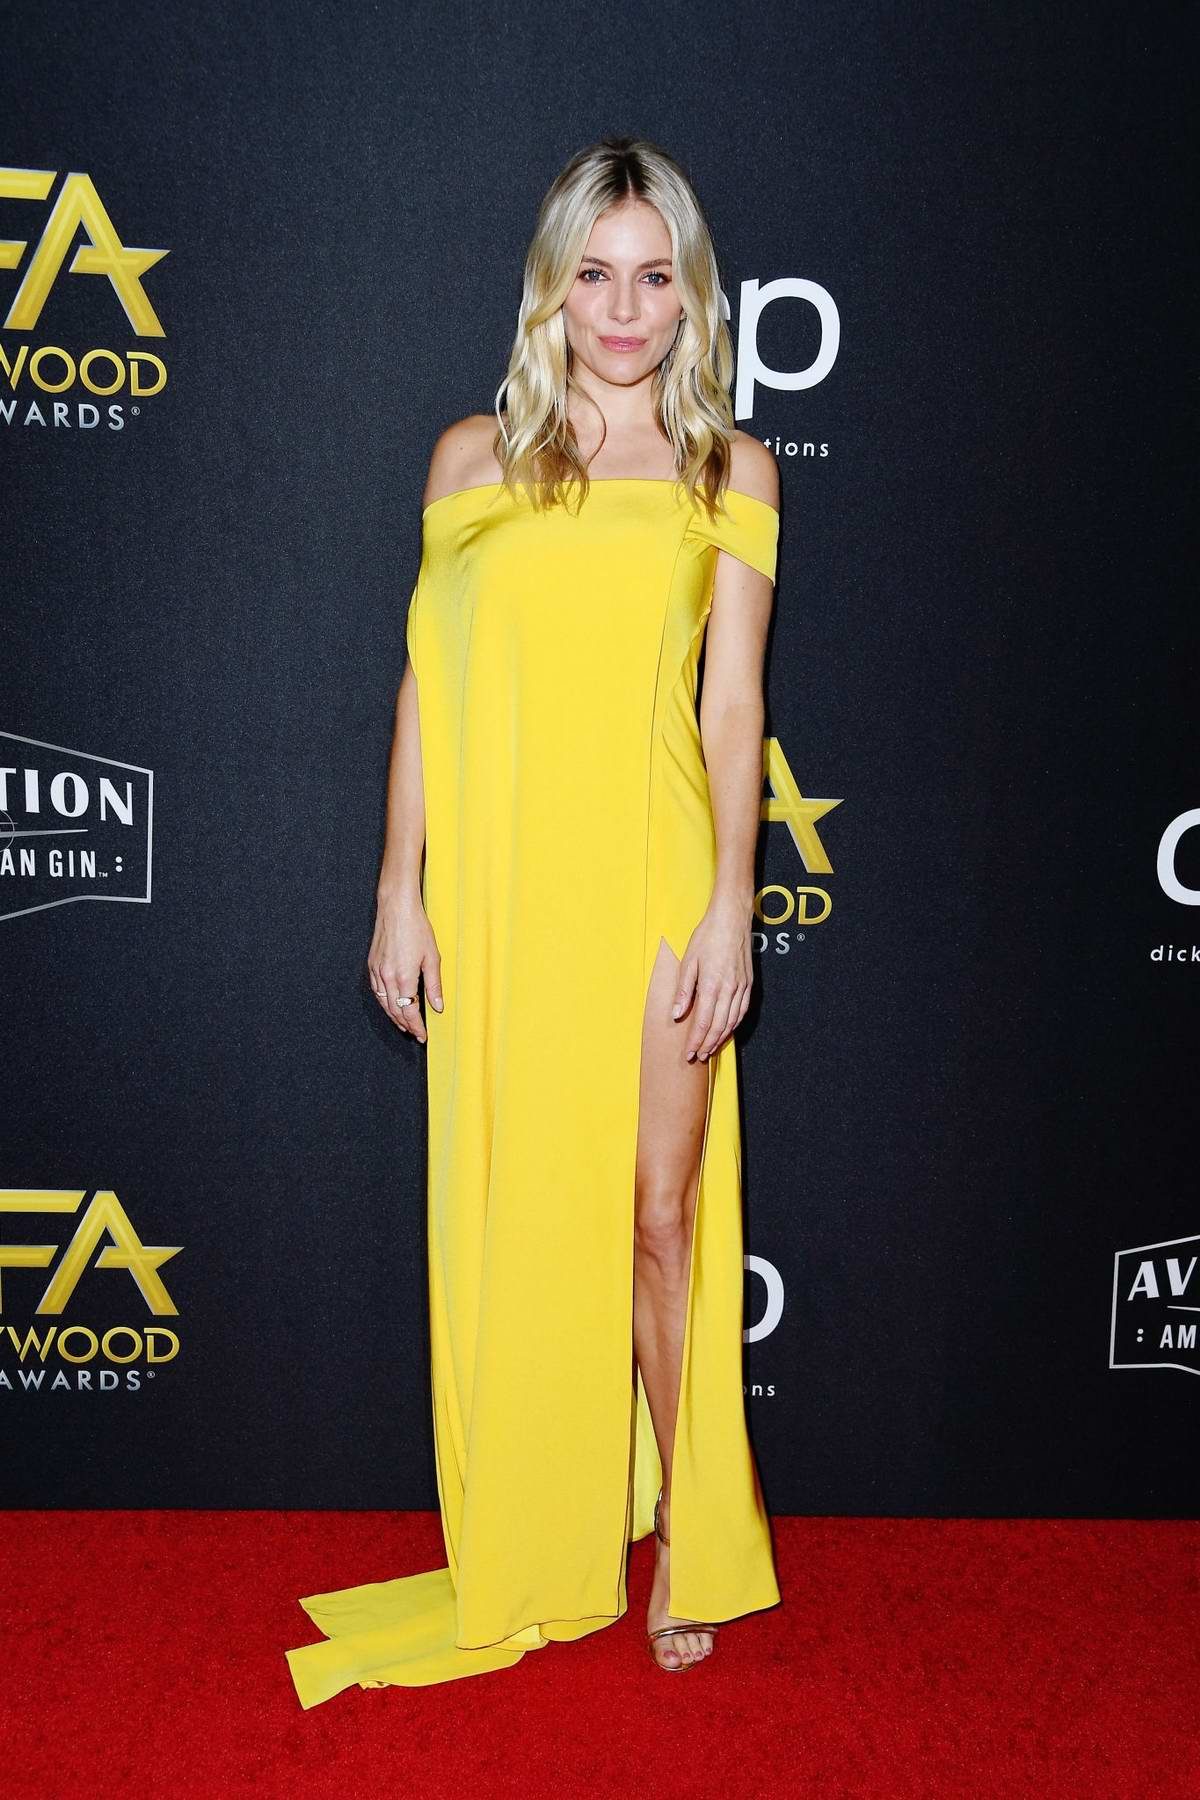 Sienna Miller attends the 23rd Annual Hollywood Film Awards at The Beverly Hilton Hotel in Beverly Hills, Los Angeles